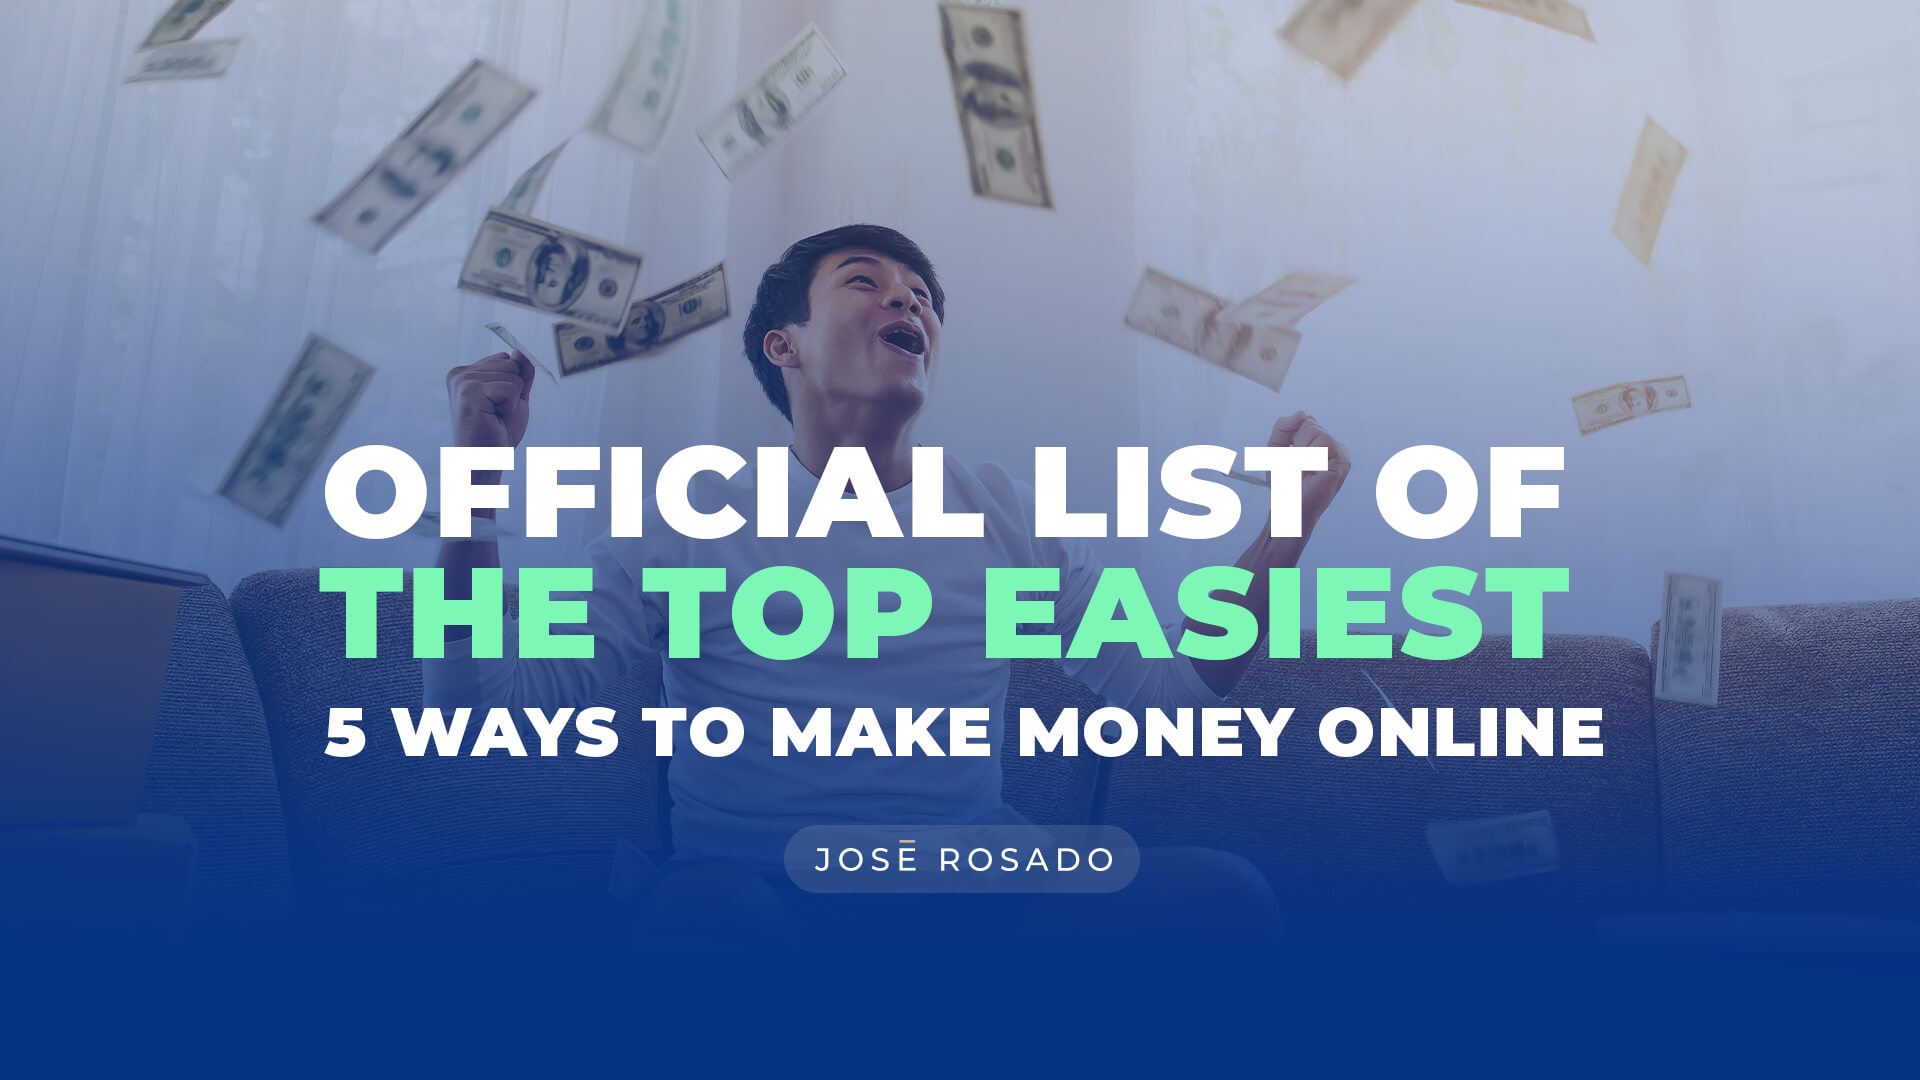 Official List of the top easiest 5 ways to make money online